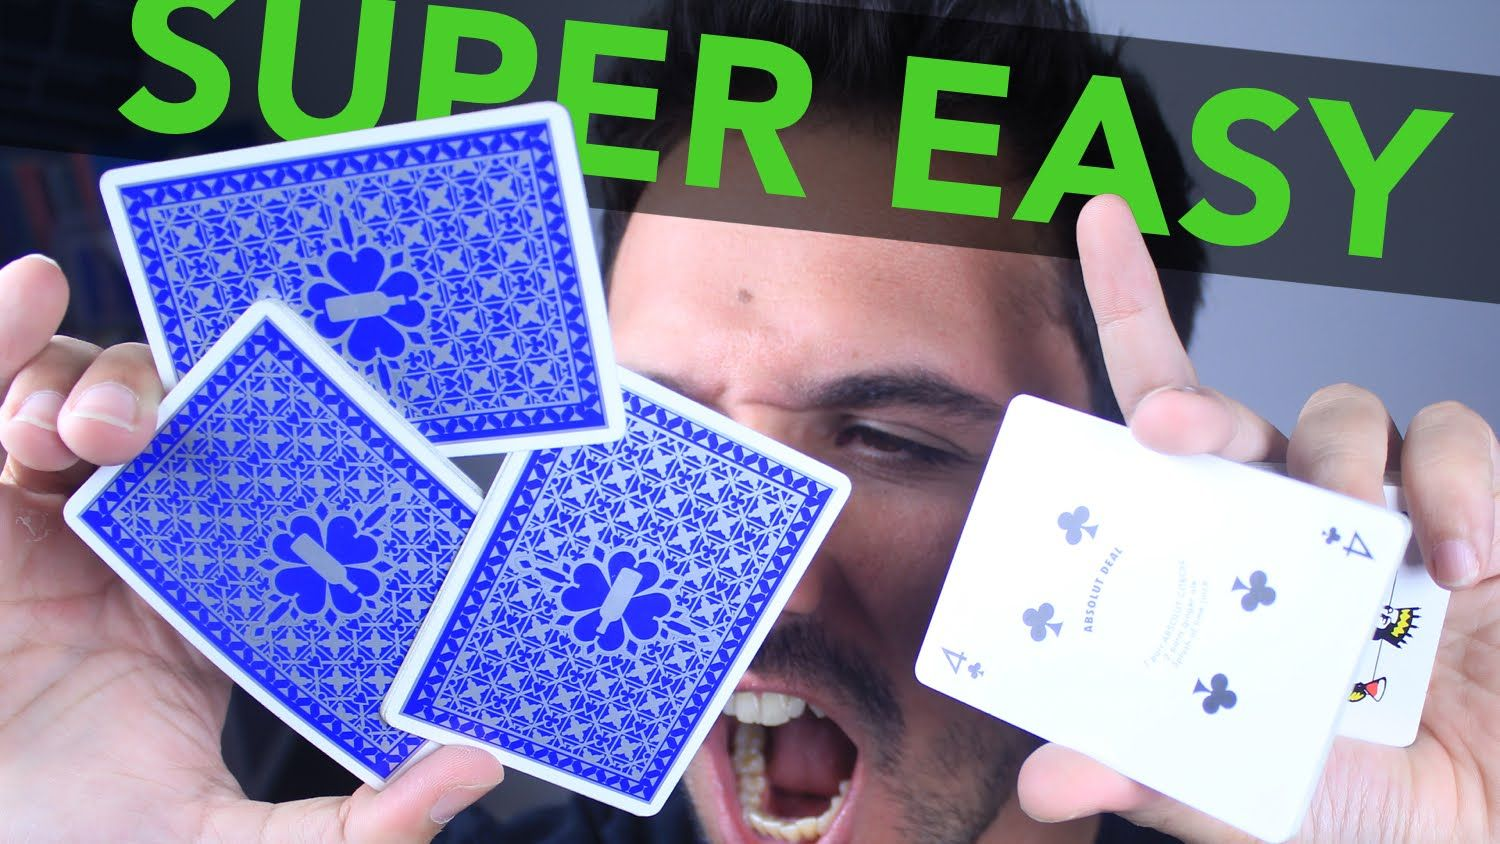 3 Easy Great Card Flourish Tutorial For Beginners With Images